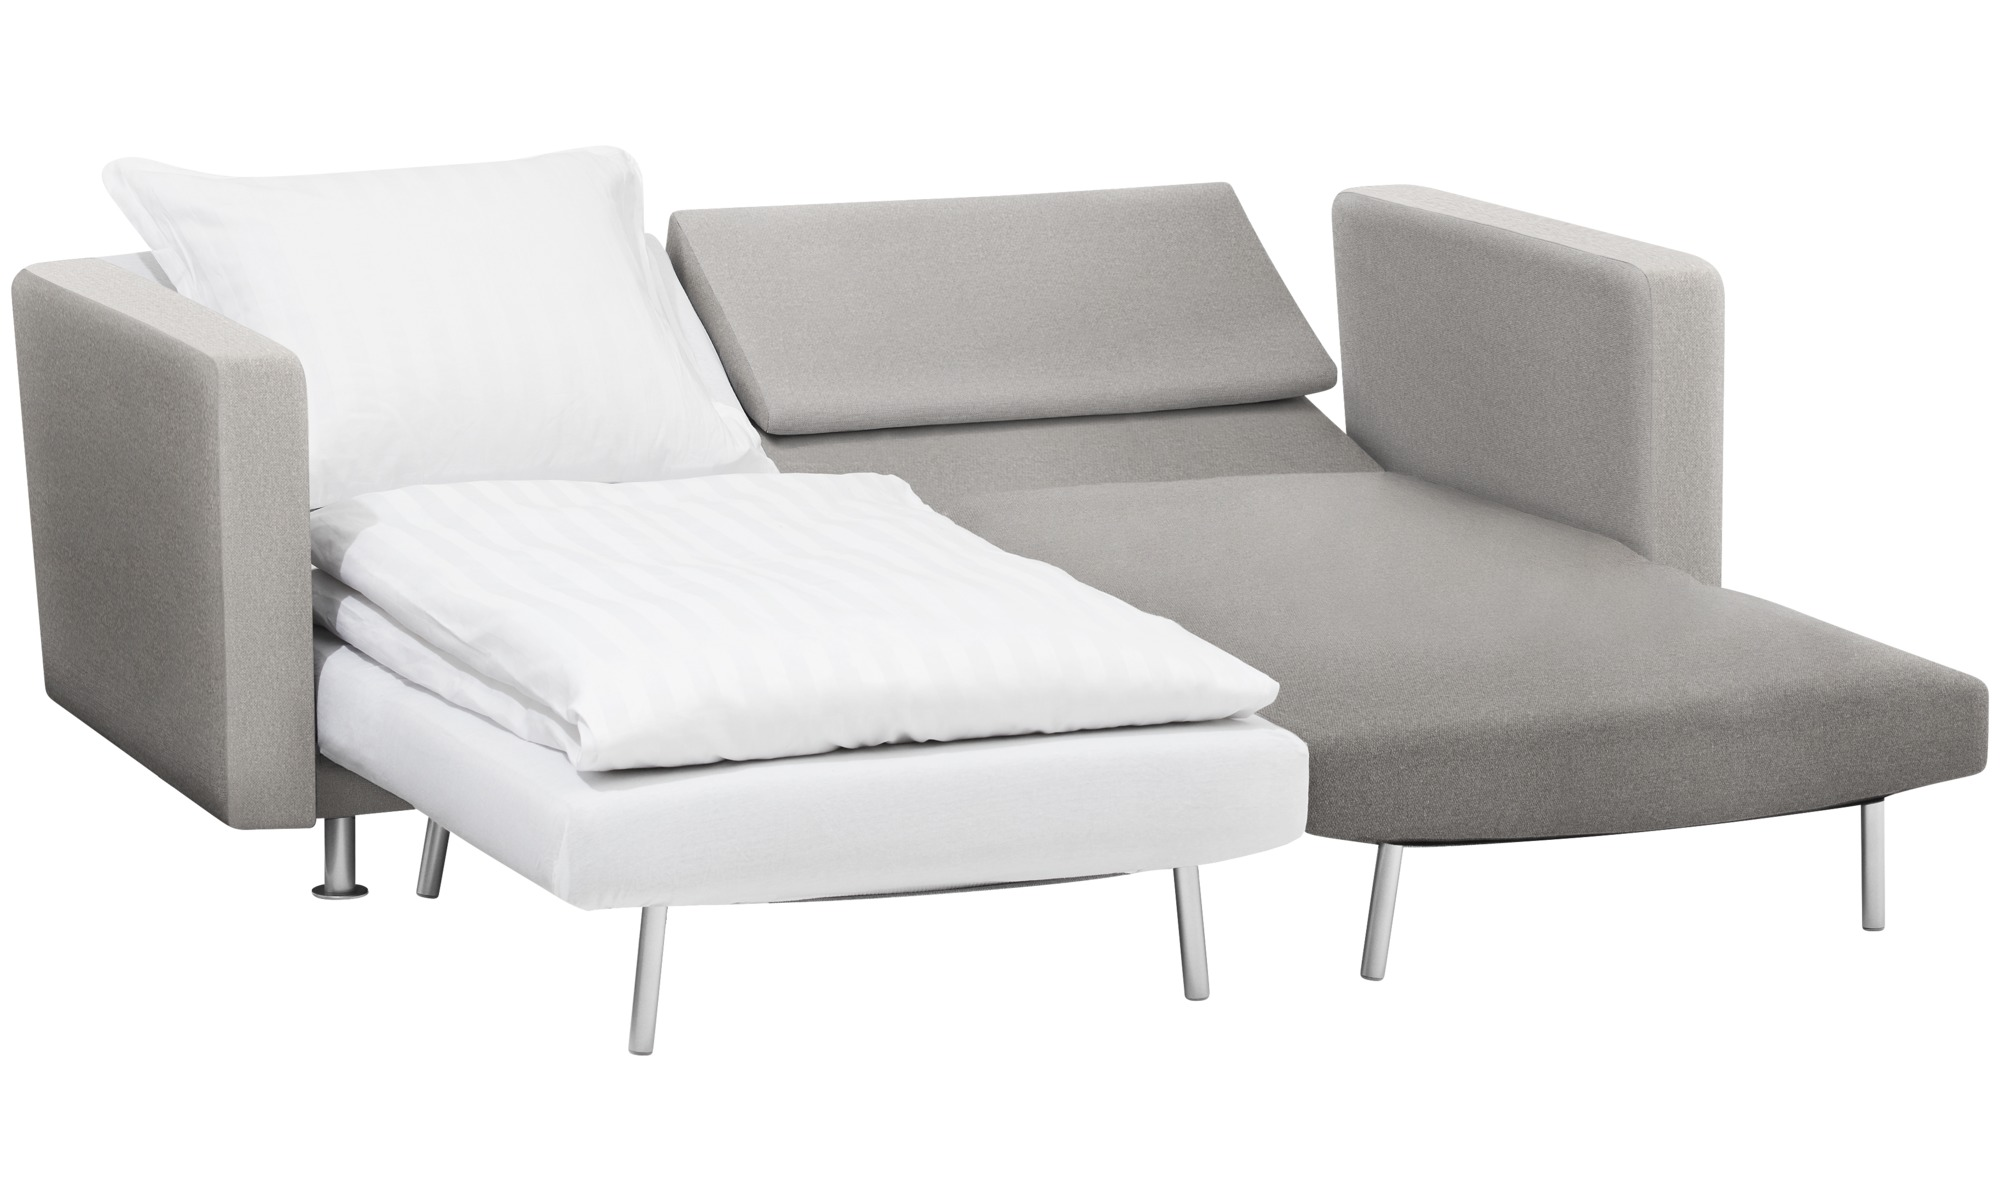 Cool Sofa Beds Melo 2 Sofa With Reclining And Sleeping Function Theyellowbook Wood Chair Design Ideas Theyellowbookinfo